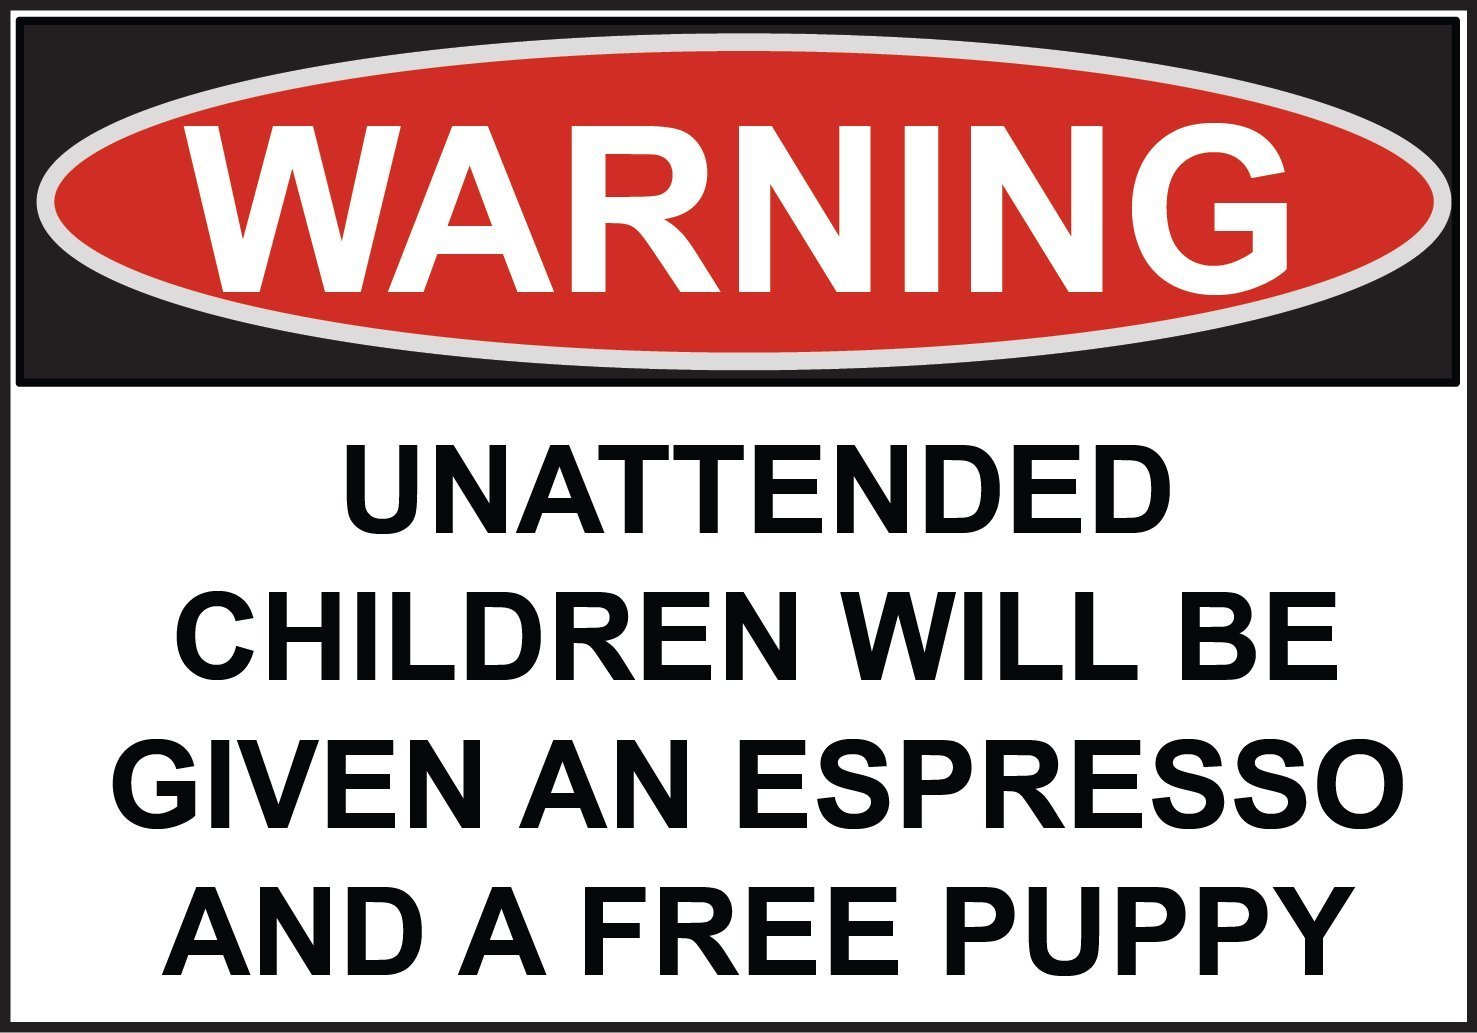 Unattended Children Given Espresso Kitten Metal Tin Sign ~ Made in the USA